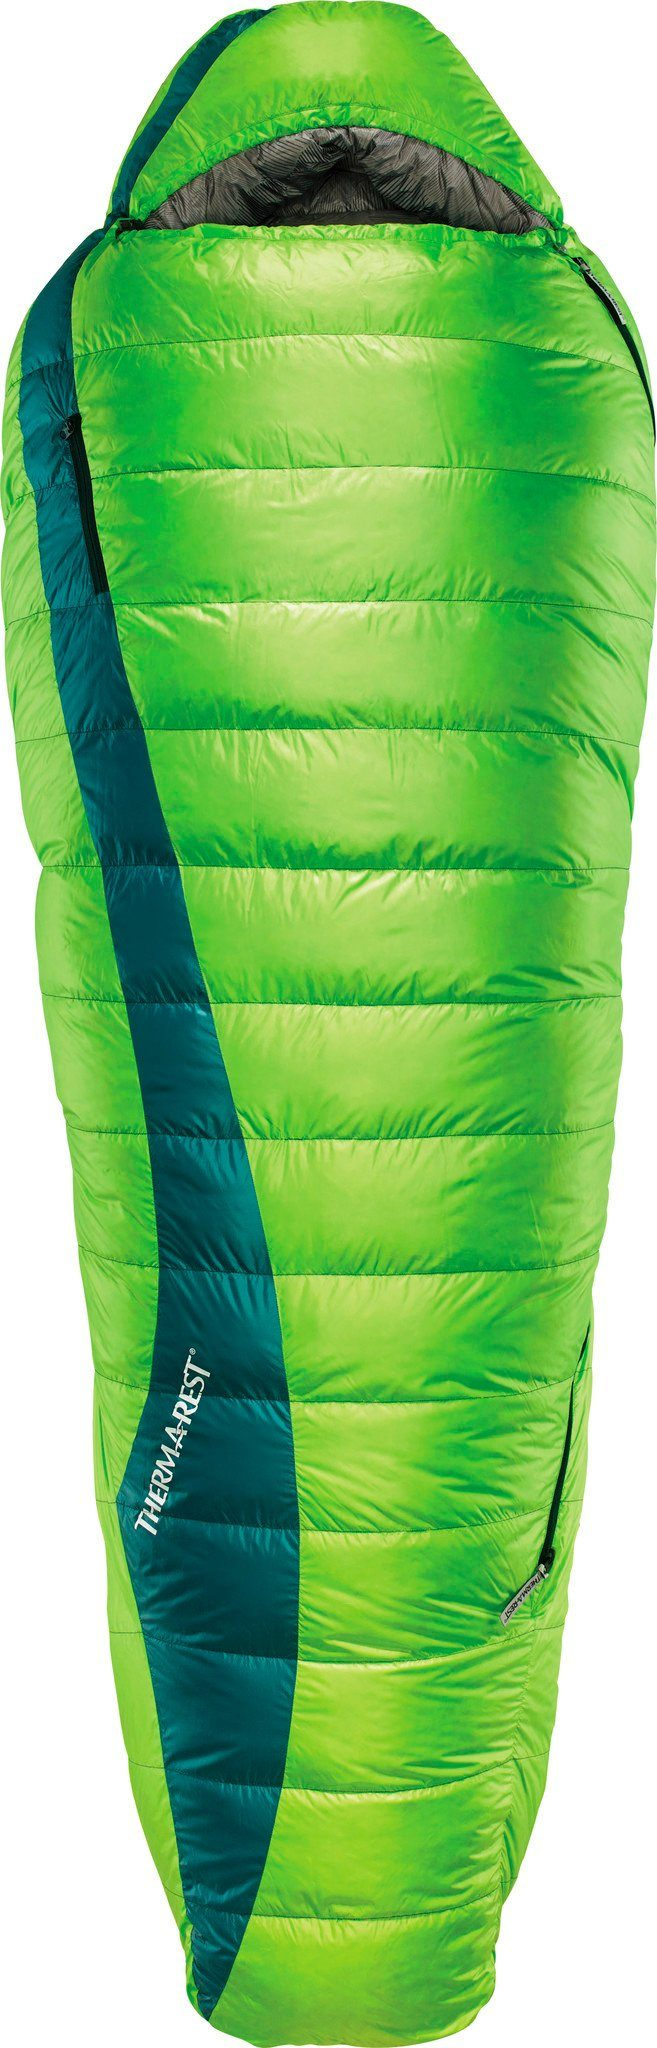 Therm-a-Rest Schlafsack »Therm-a-Rest Questar HD Sleeping Bag Small«